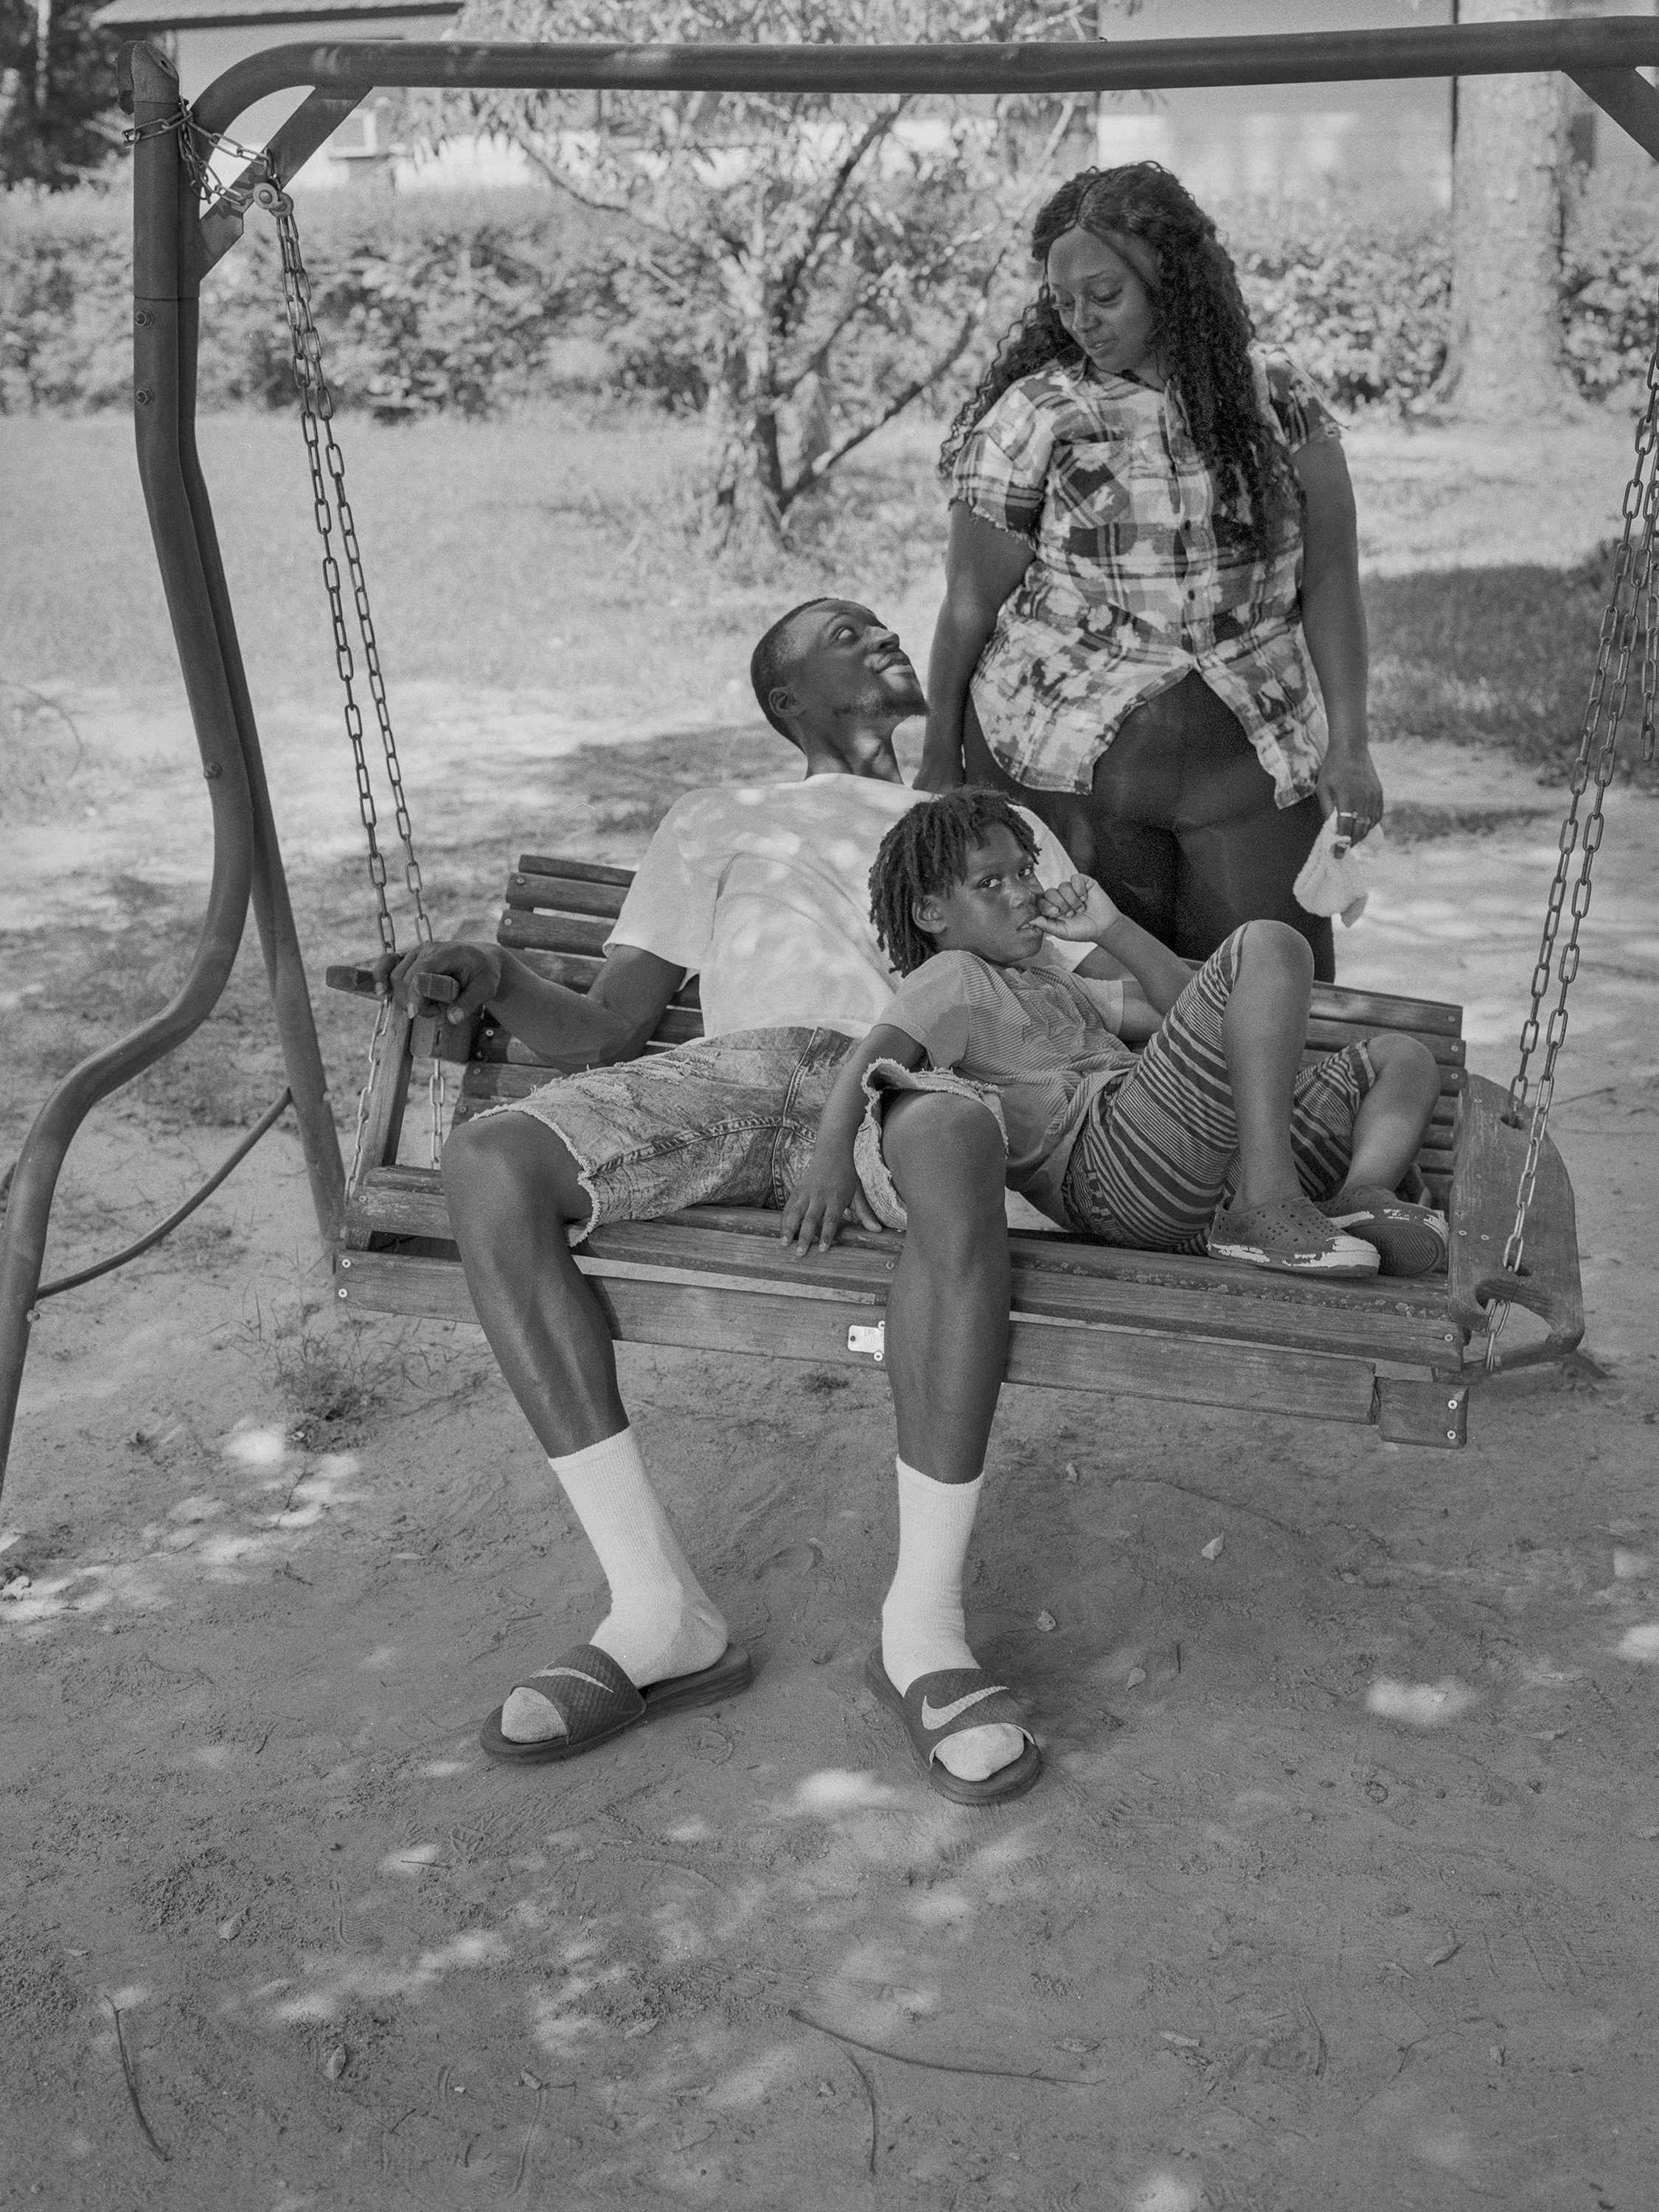 A family of a man, woman and child outside on a standing swing bench